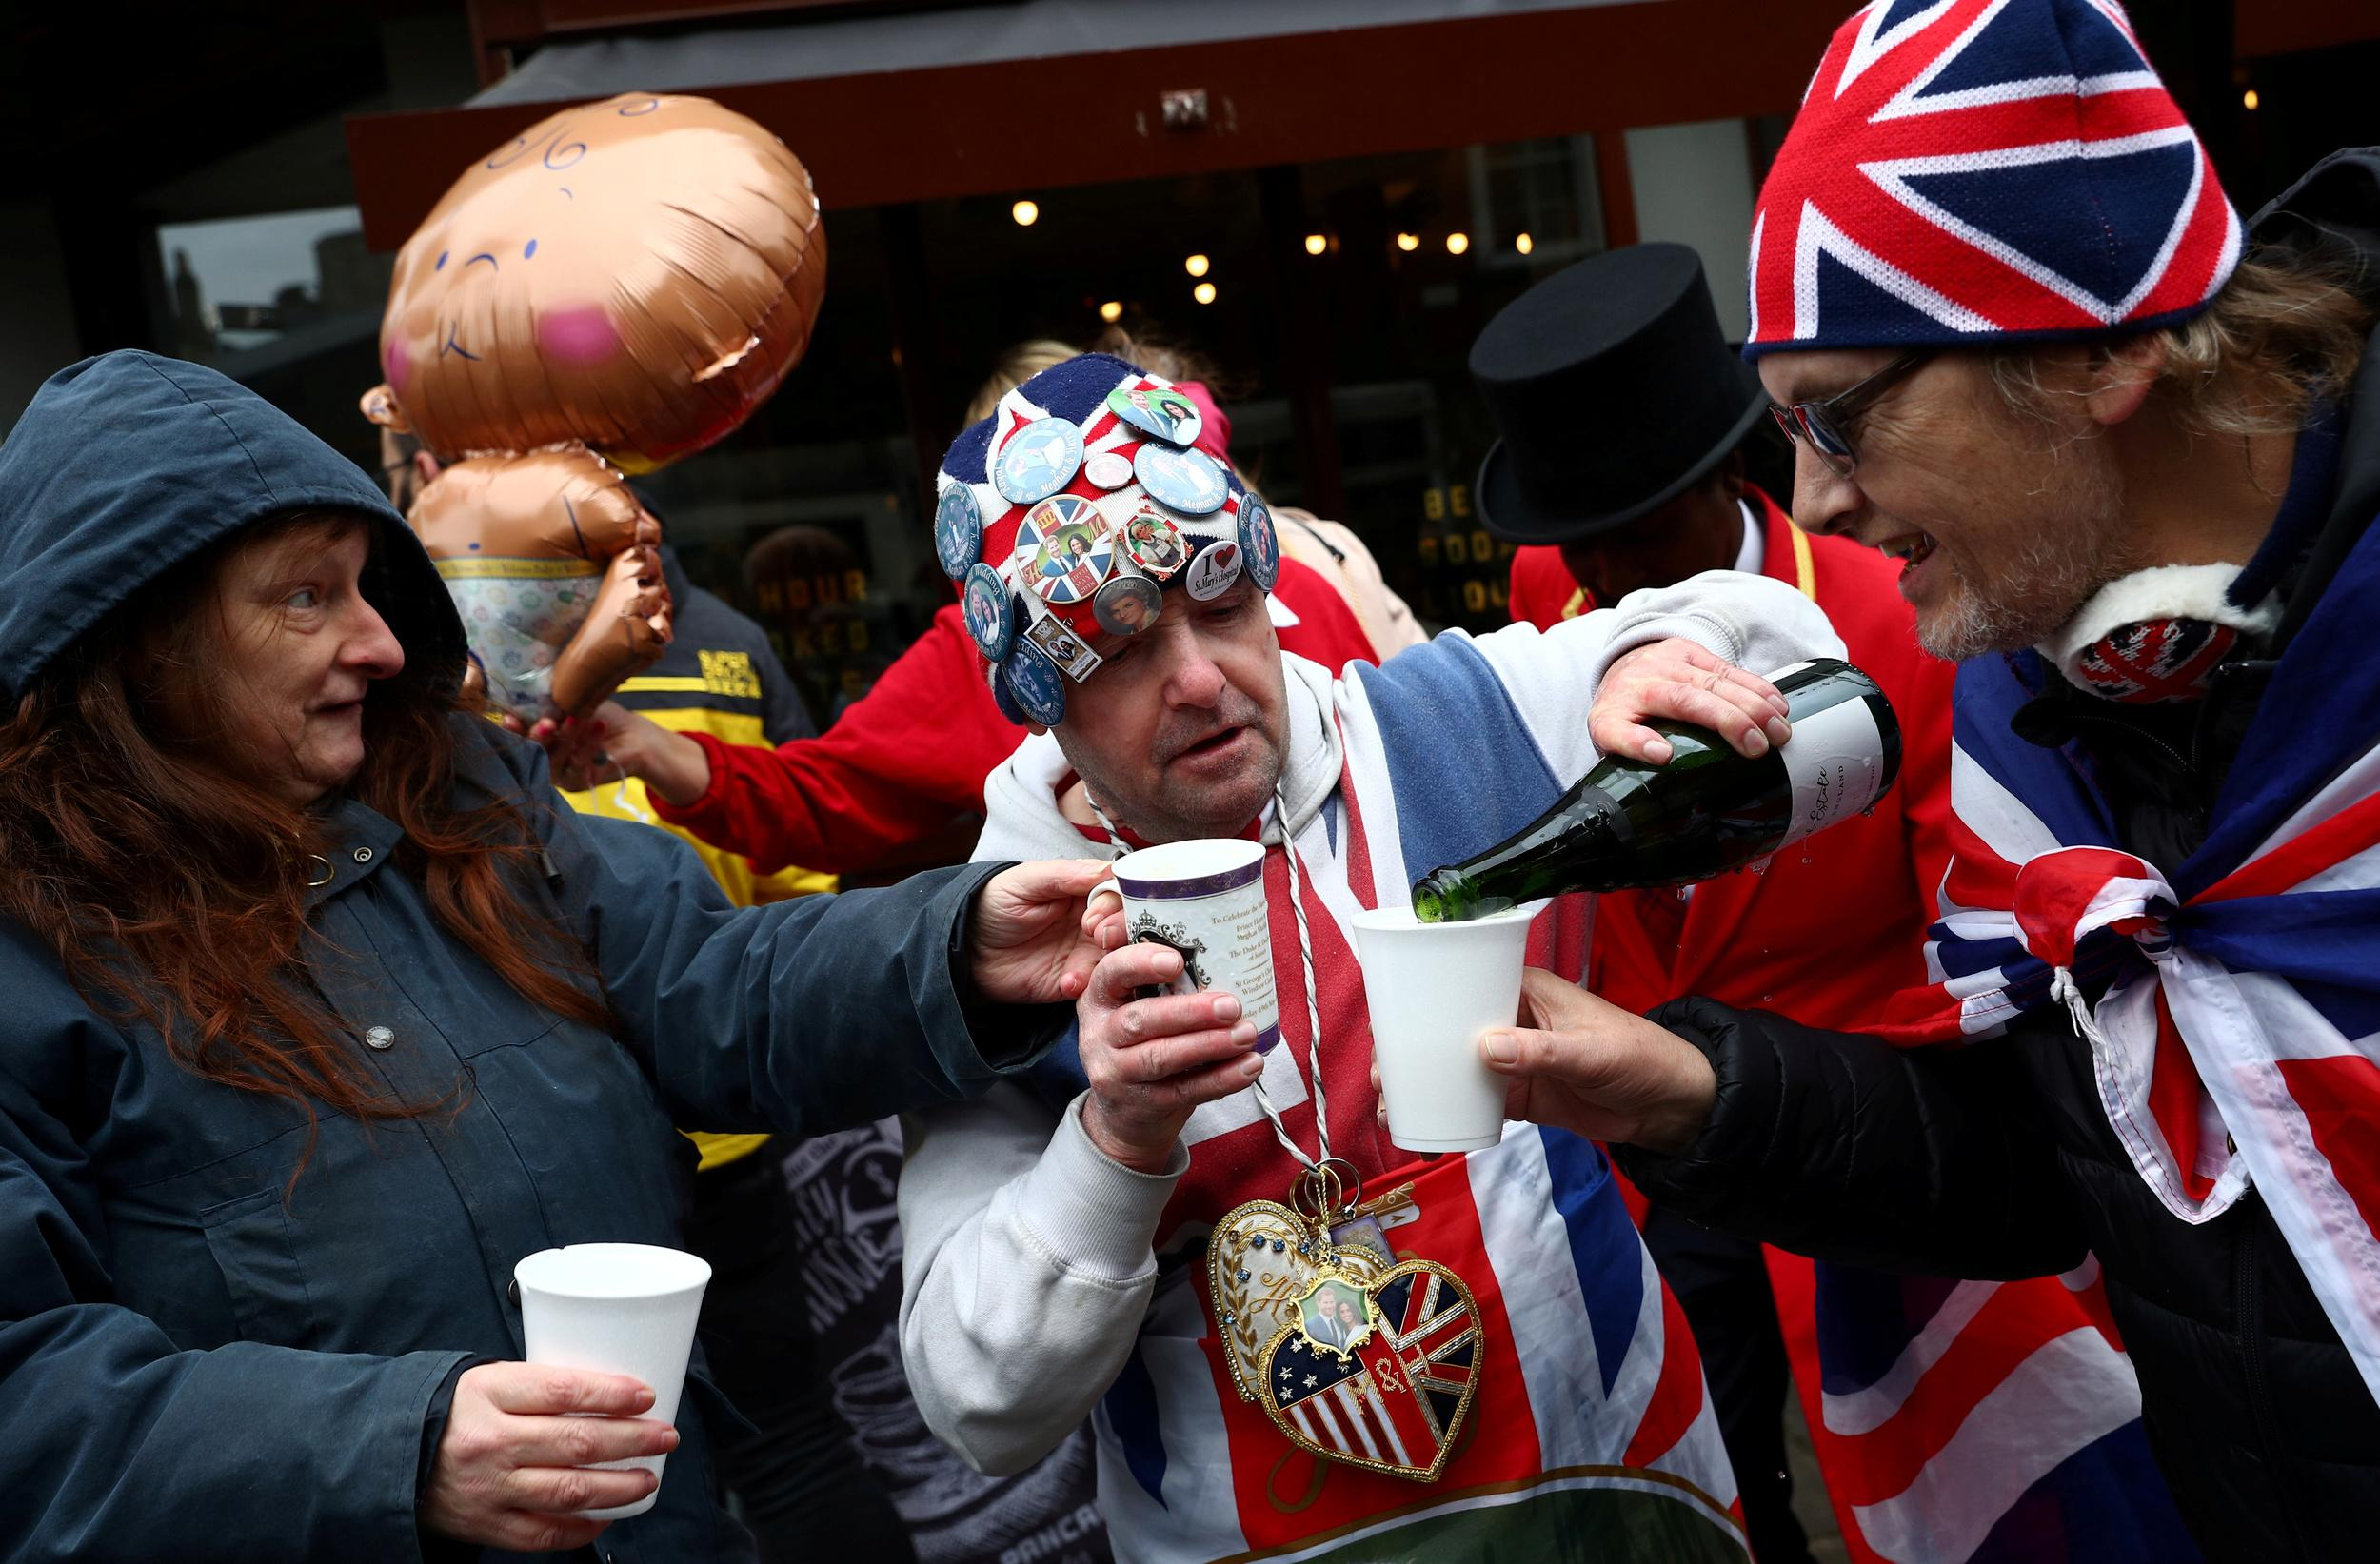 People celebrate the birth of the baby of Britain's Meghan, the Duchess of Sussex at Windsor Castle in Windsor, Britain May 6, 2019. REUTERS/Hannah McKay